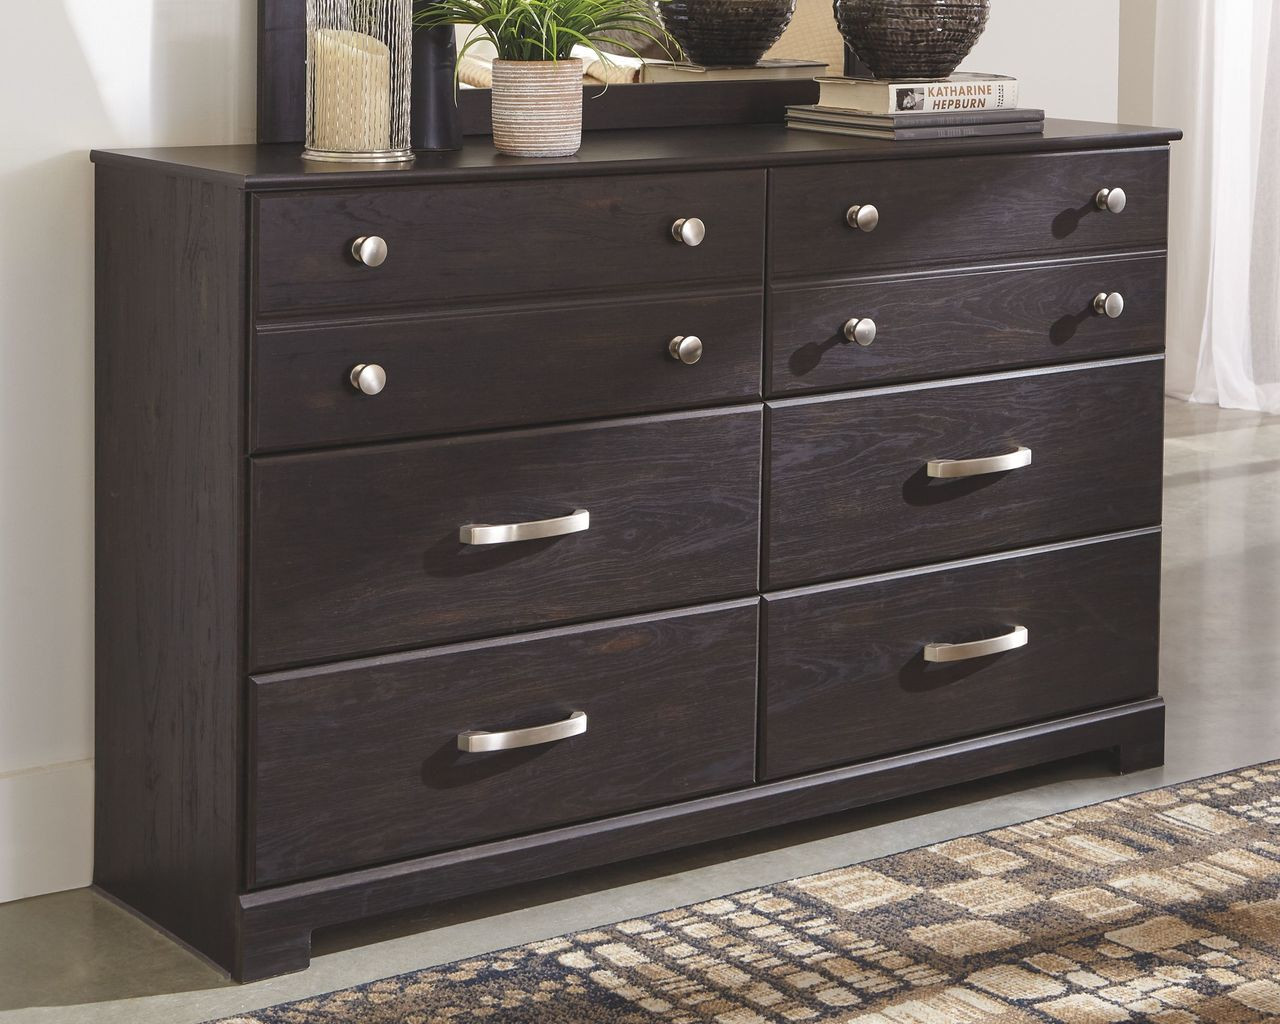 reputable site 9aec6 a6b1d Reylow Dark Brown Dresser